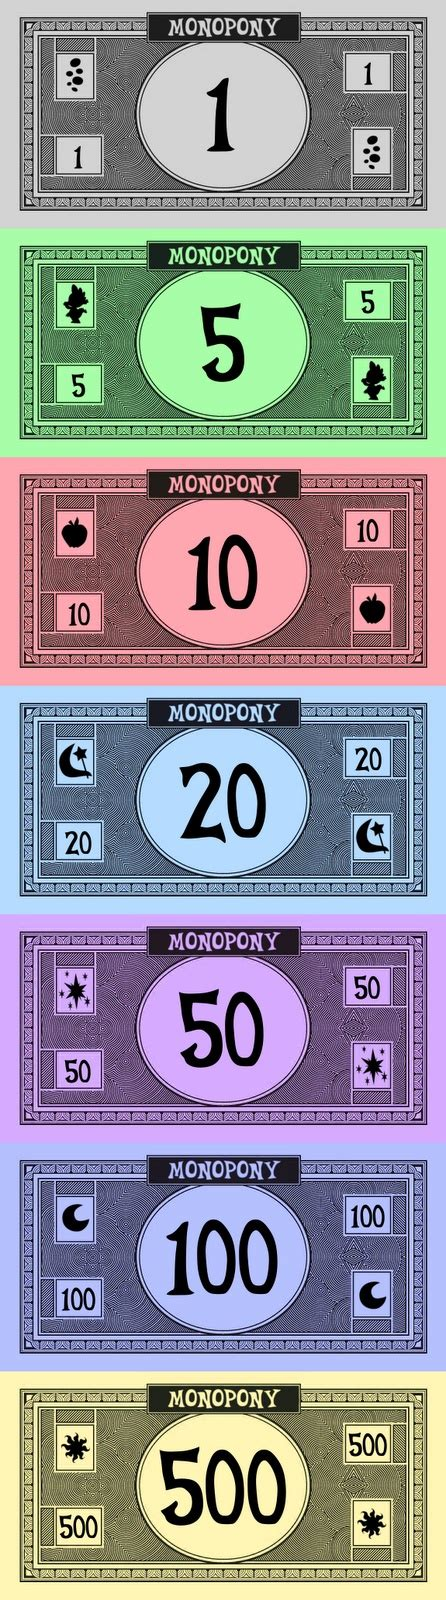 monopoly money template 18 best monopoly images on